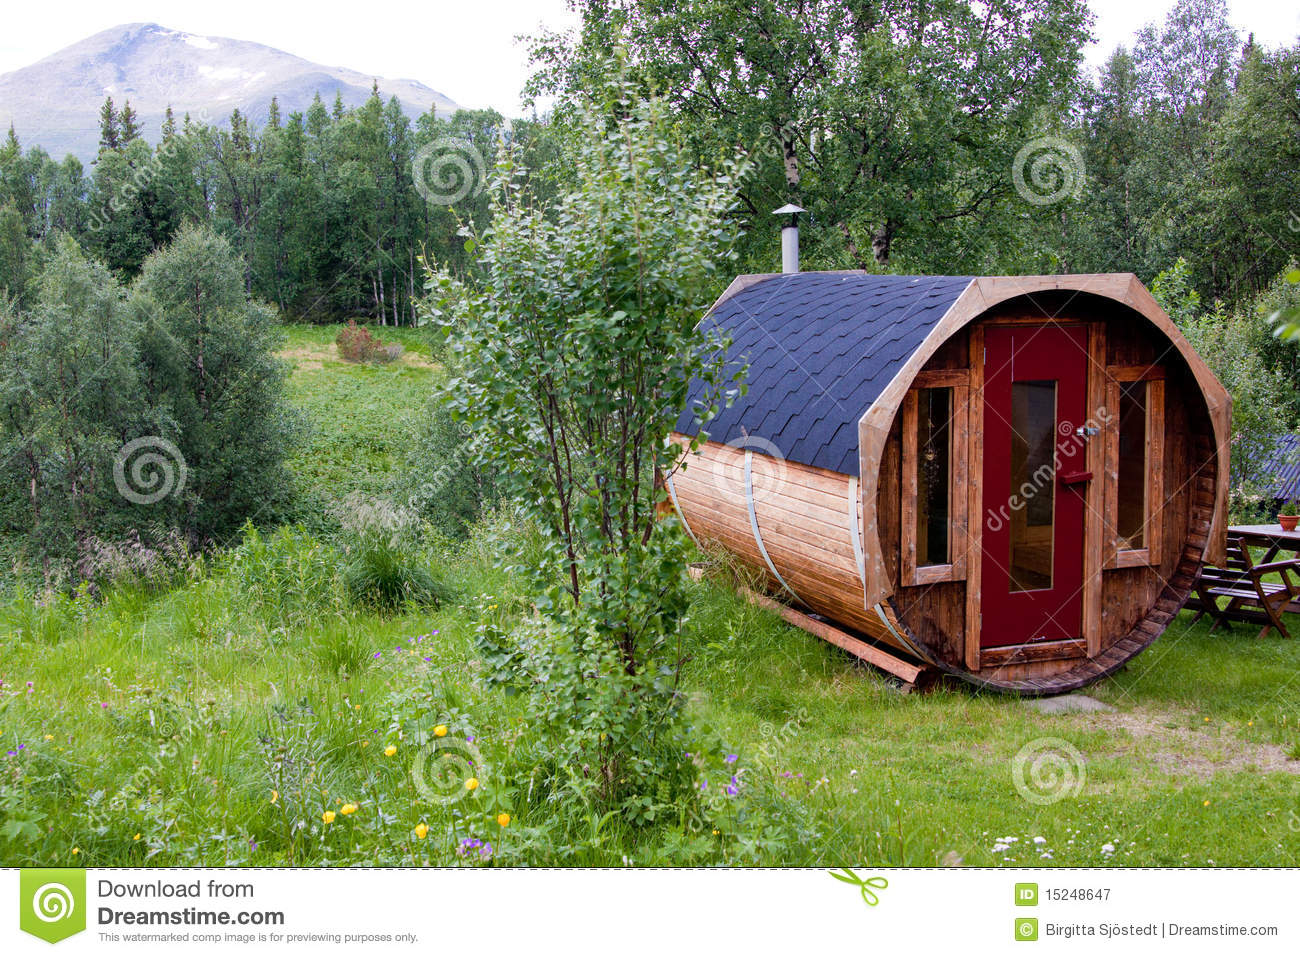 Swedish sauna at Snasan.